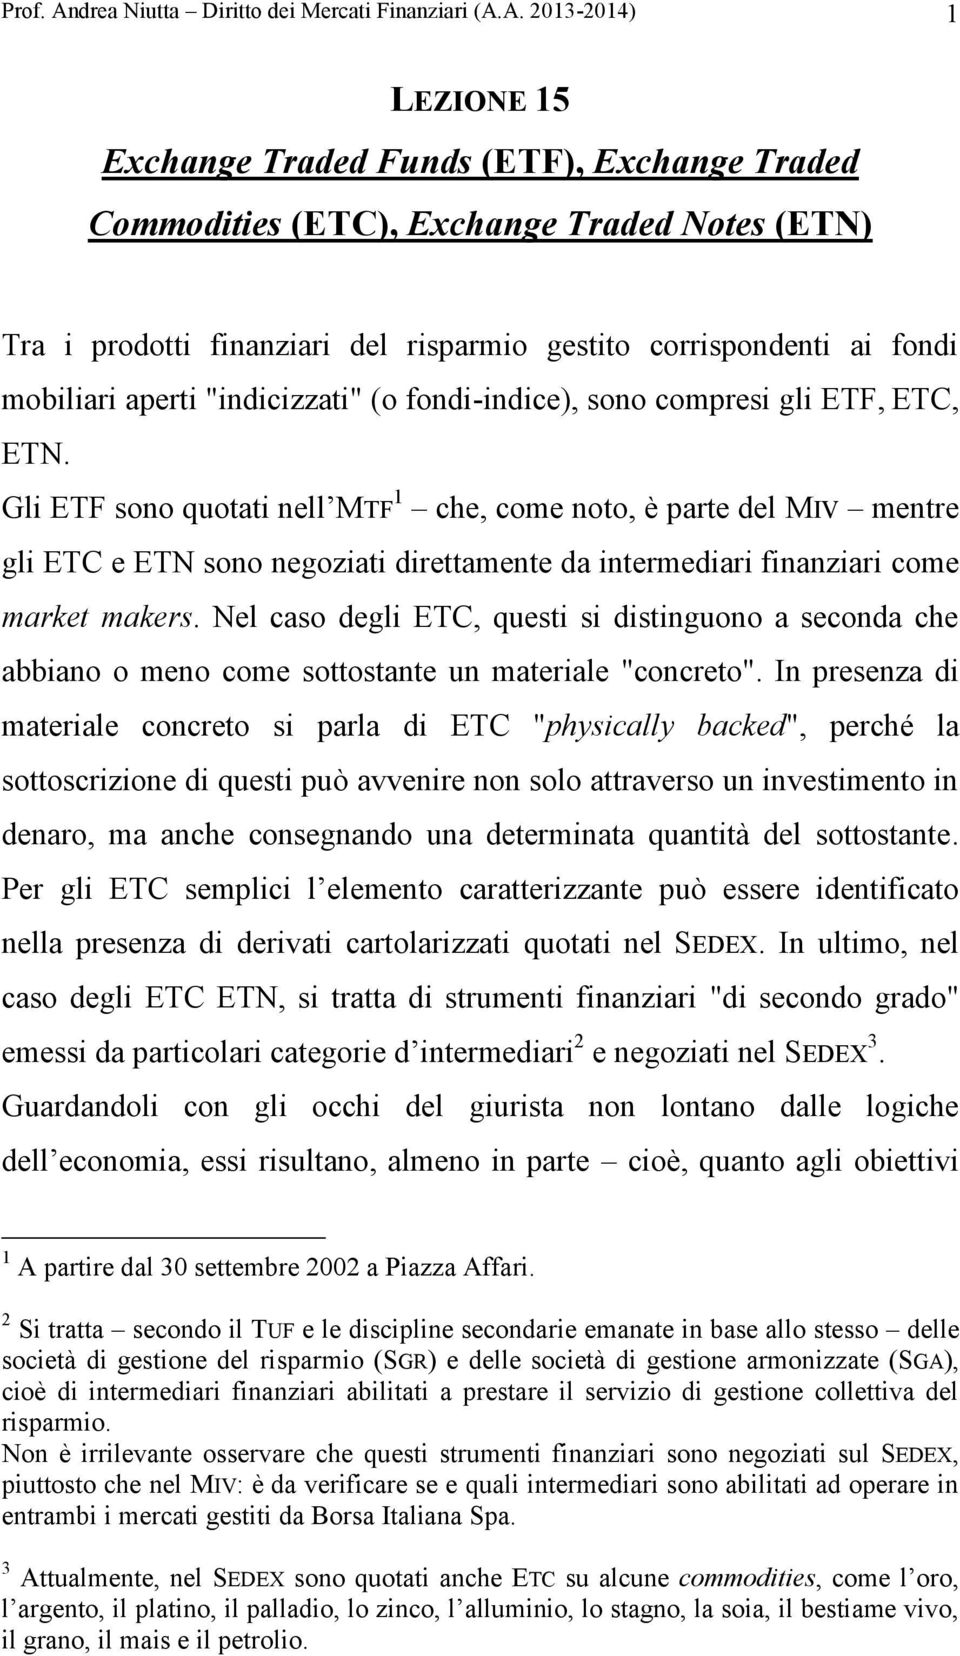 A. 2013-2014) 1 LEZIONE 15 Exchange Traded Funds (ETF), Exchange Traded Commodities (ETC), Exchange Traded Notes (ETN) Tra i prodotti finanziari del risparmio gestito corrispondenti ai fondi